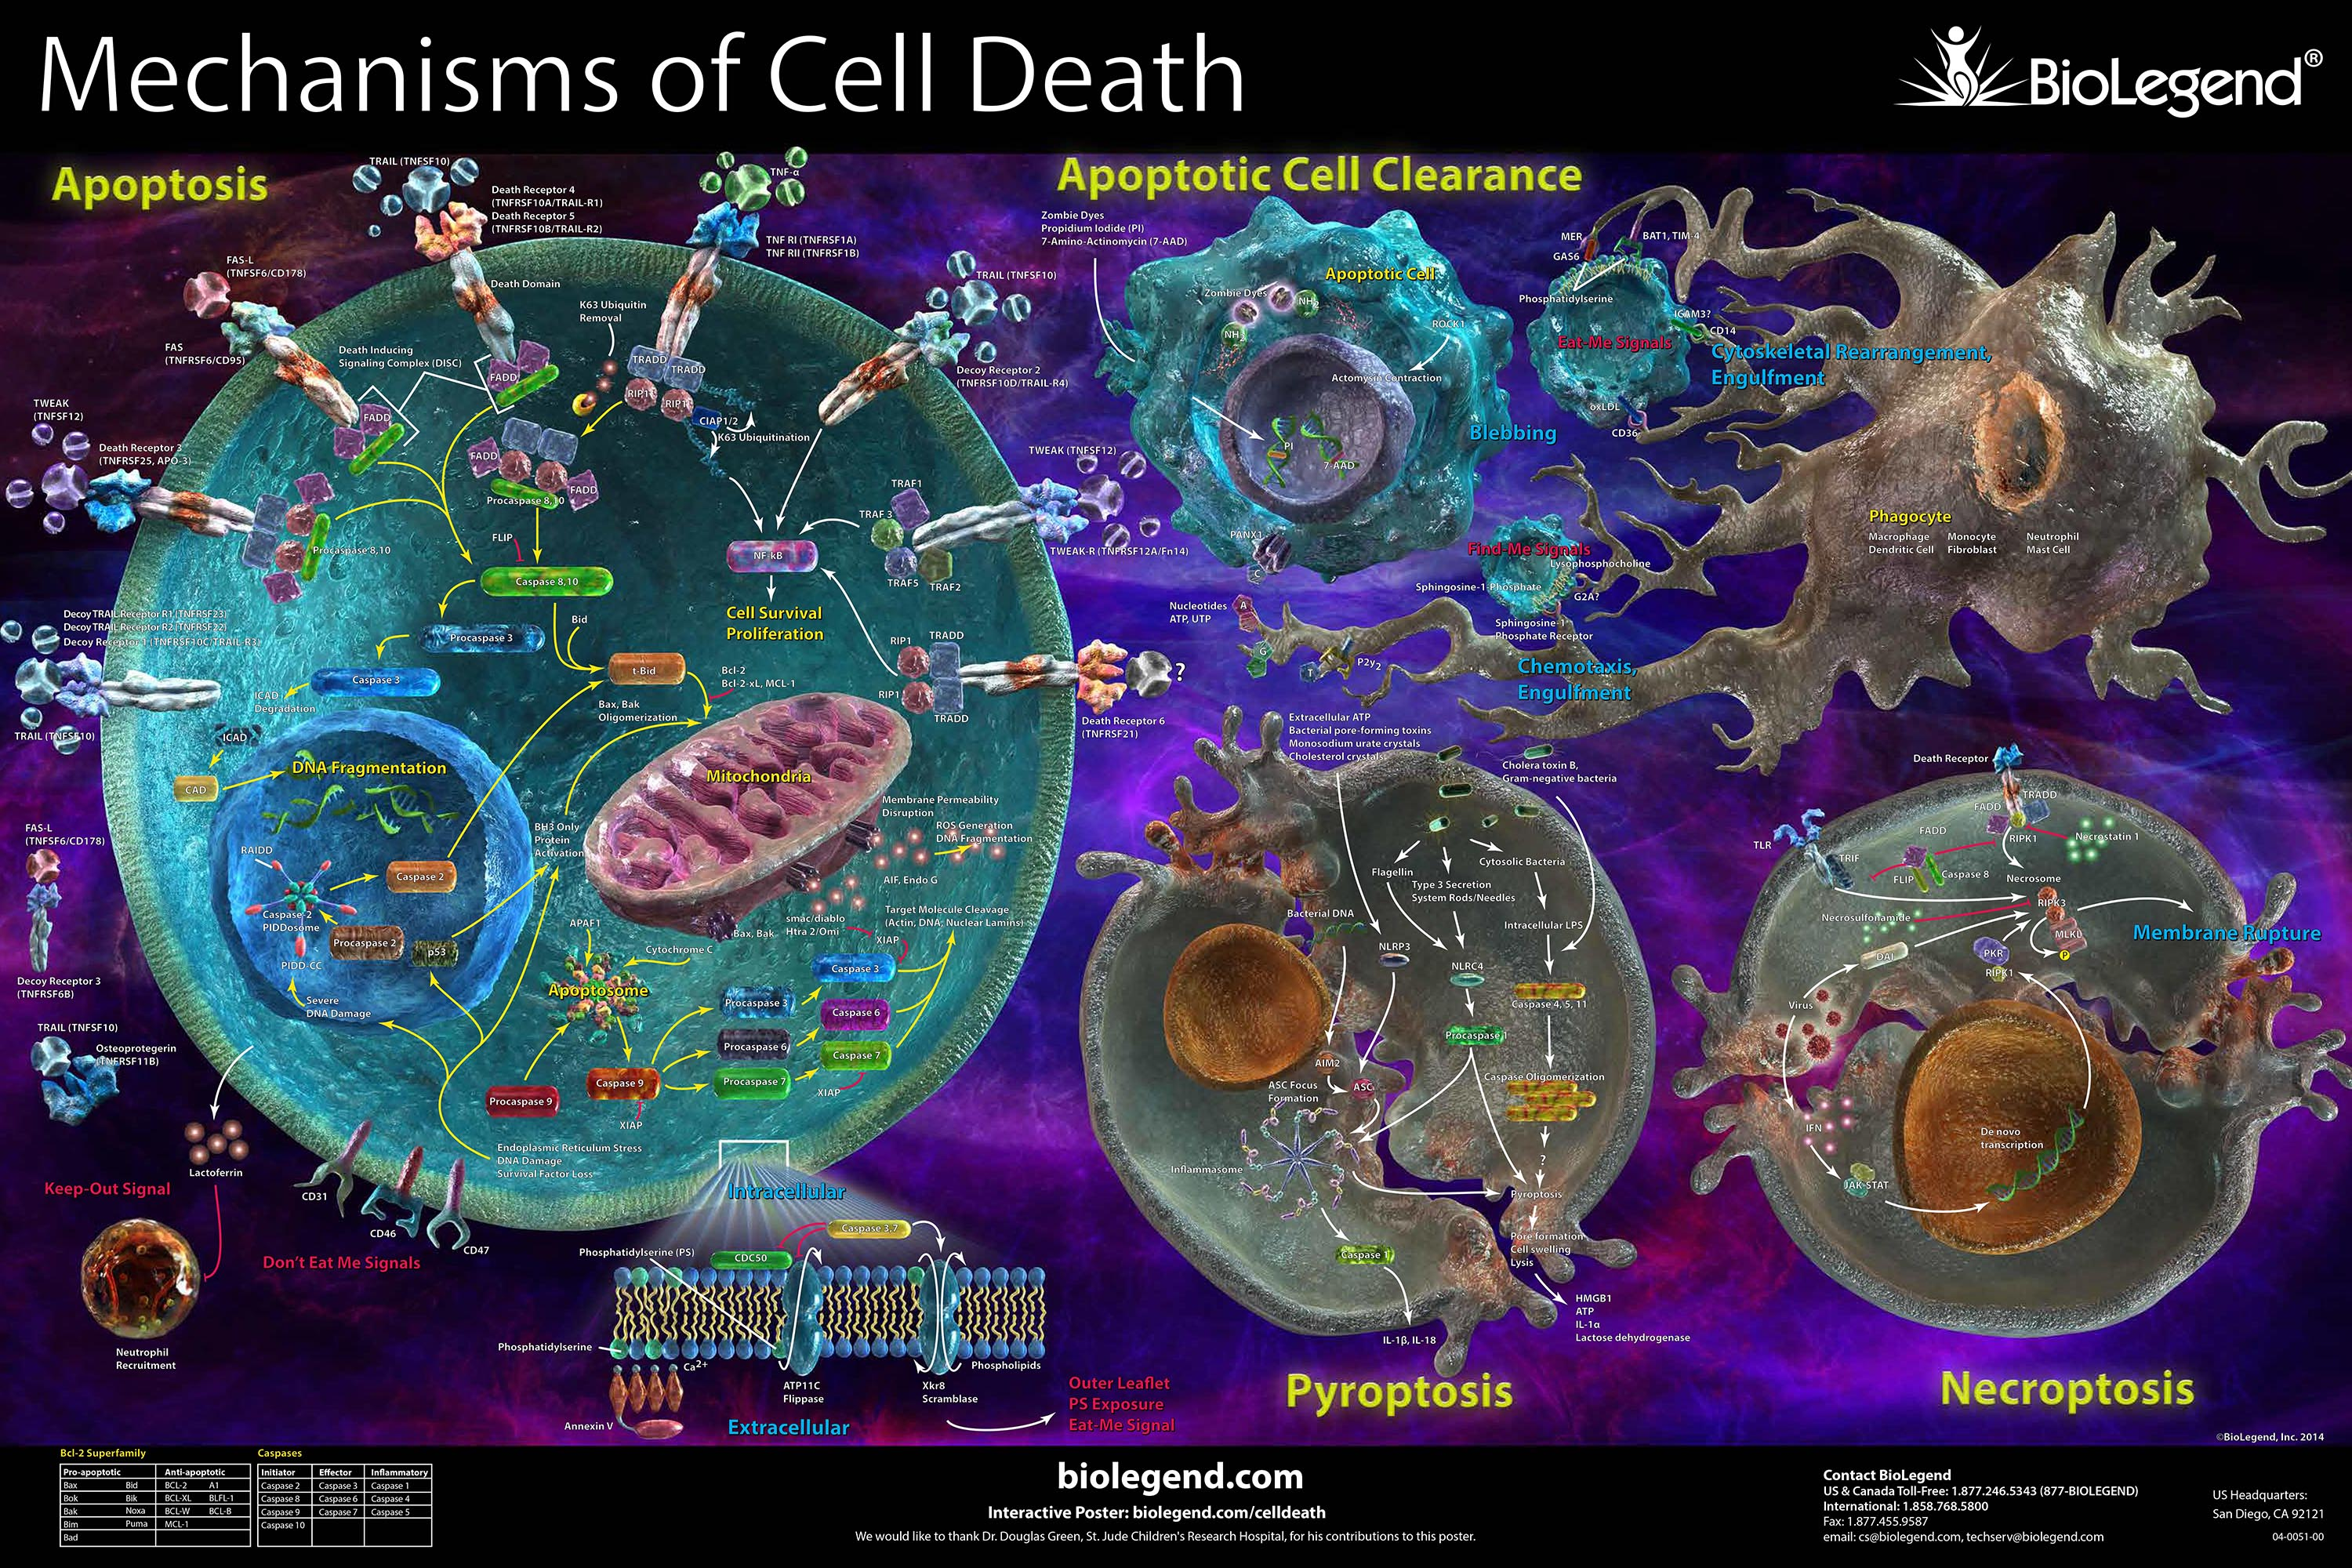 Mechanisims of Cell Death